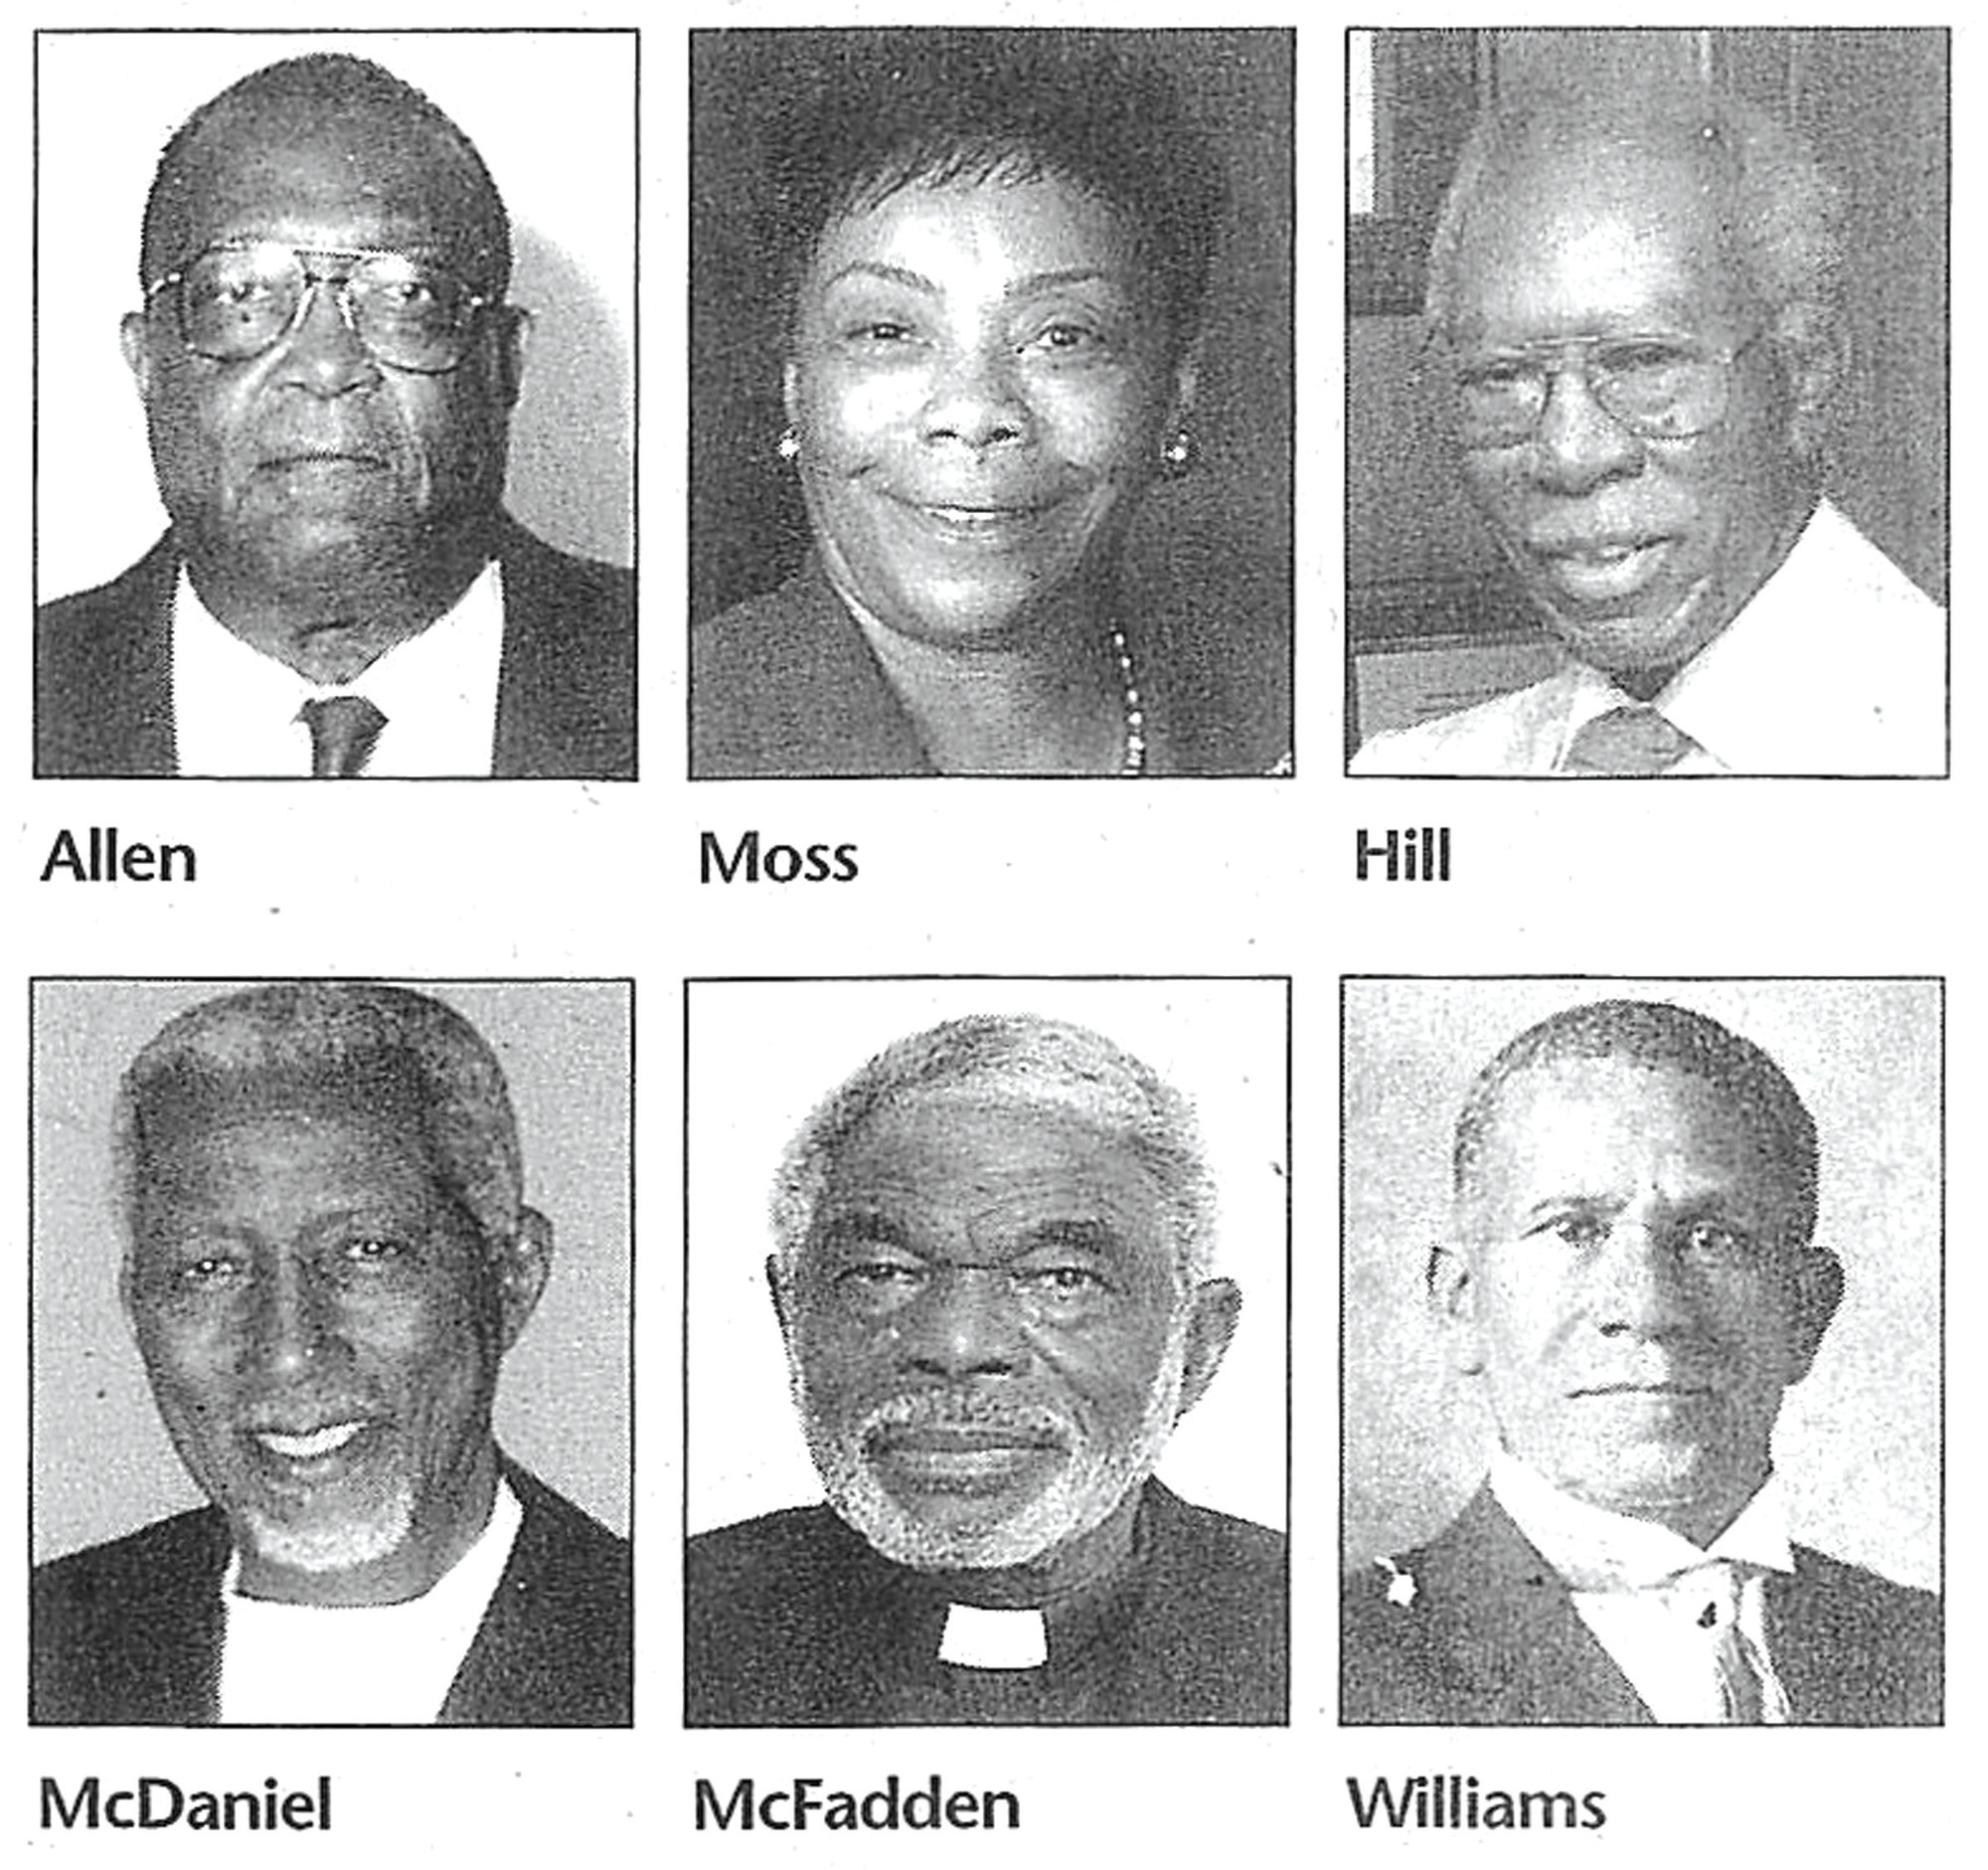 Robert Lee Williams, B. T. Williams' father, was among the 2005 inductees to the Claflin Hall of Fame.